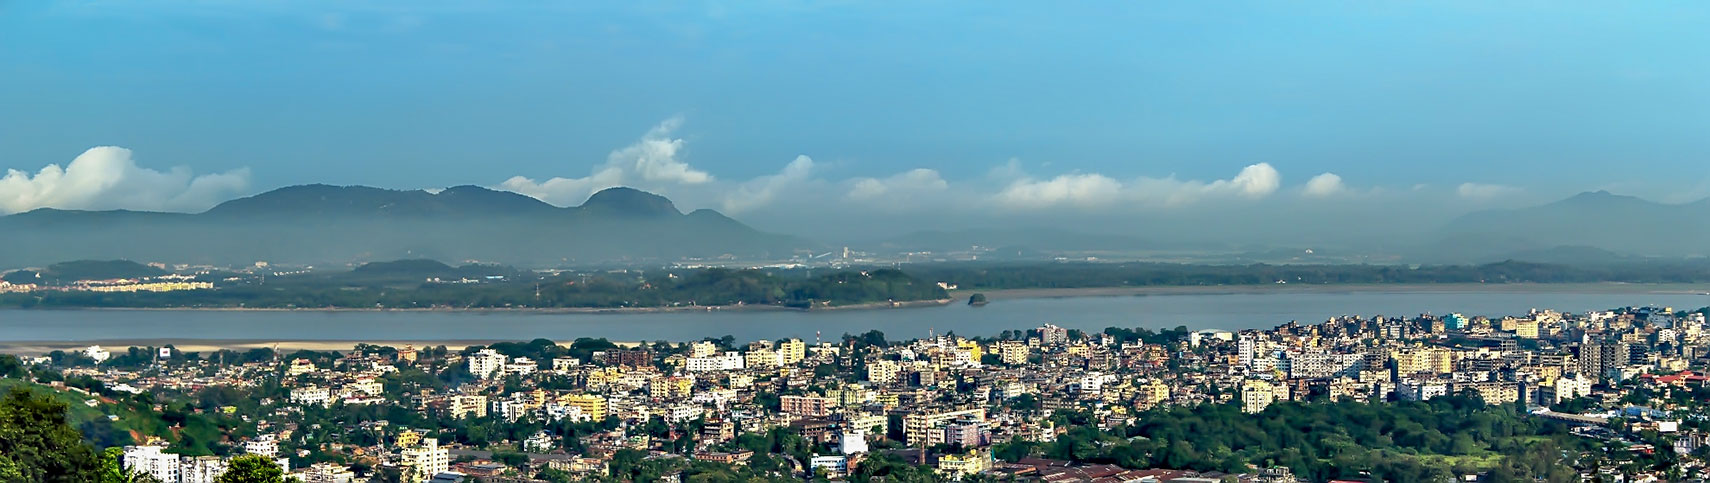 City of Guwahati (Gauhati), capital and largest city of Assam